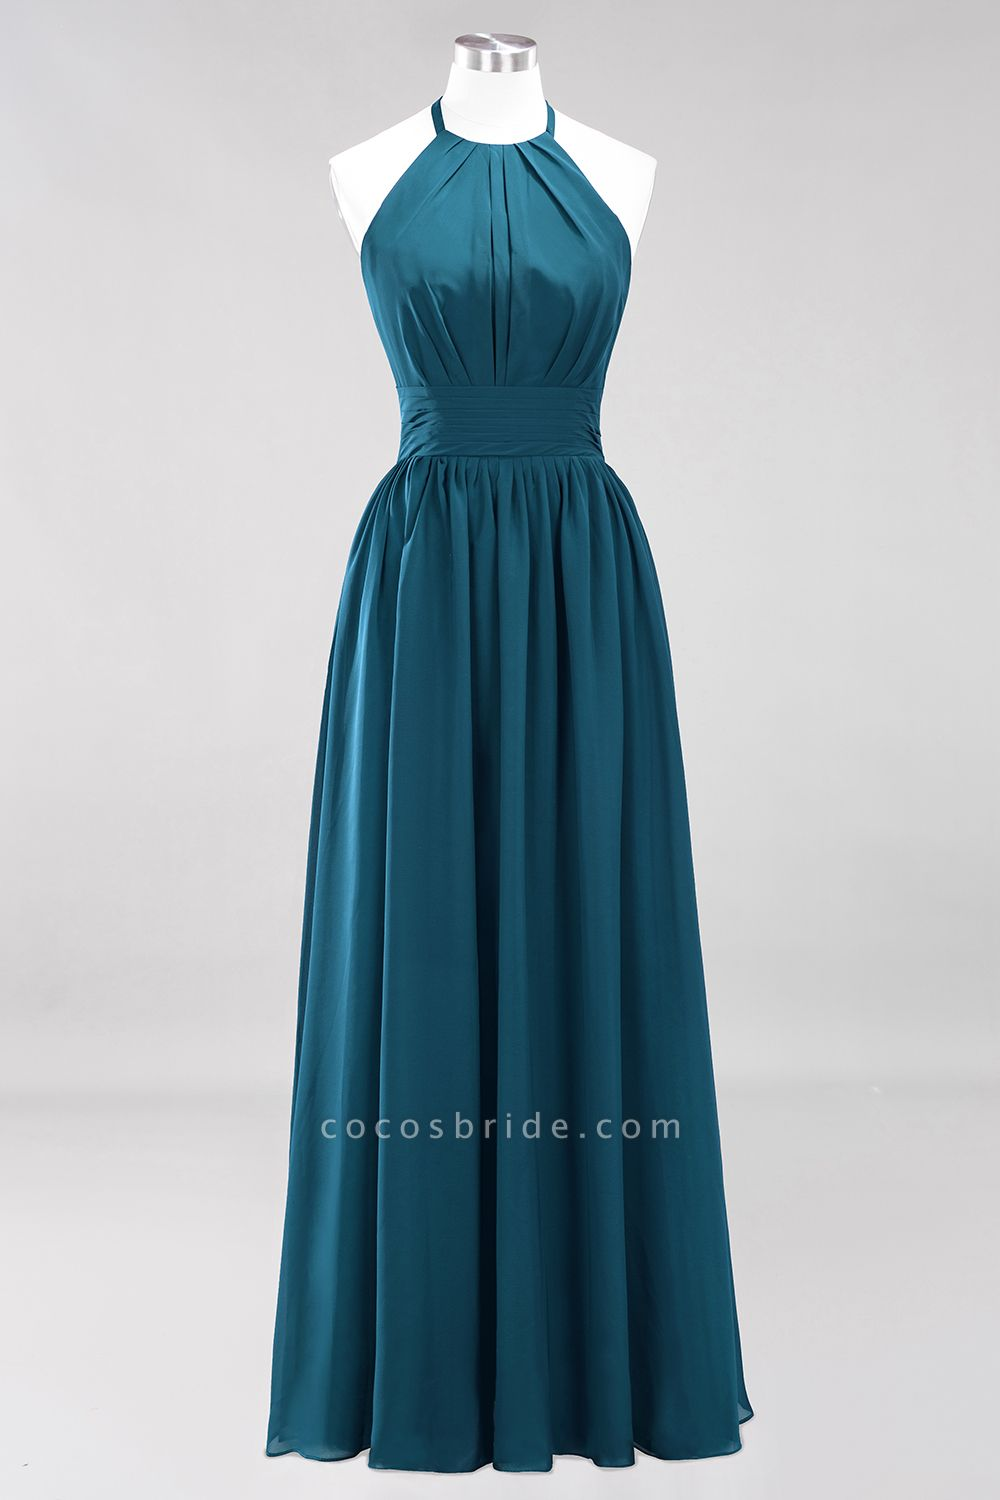 A-line Chiffon Appliques Halter Sleeveless Floor-Length Bridesmaid Dresses with Ruffles